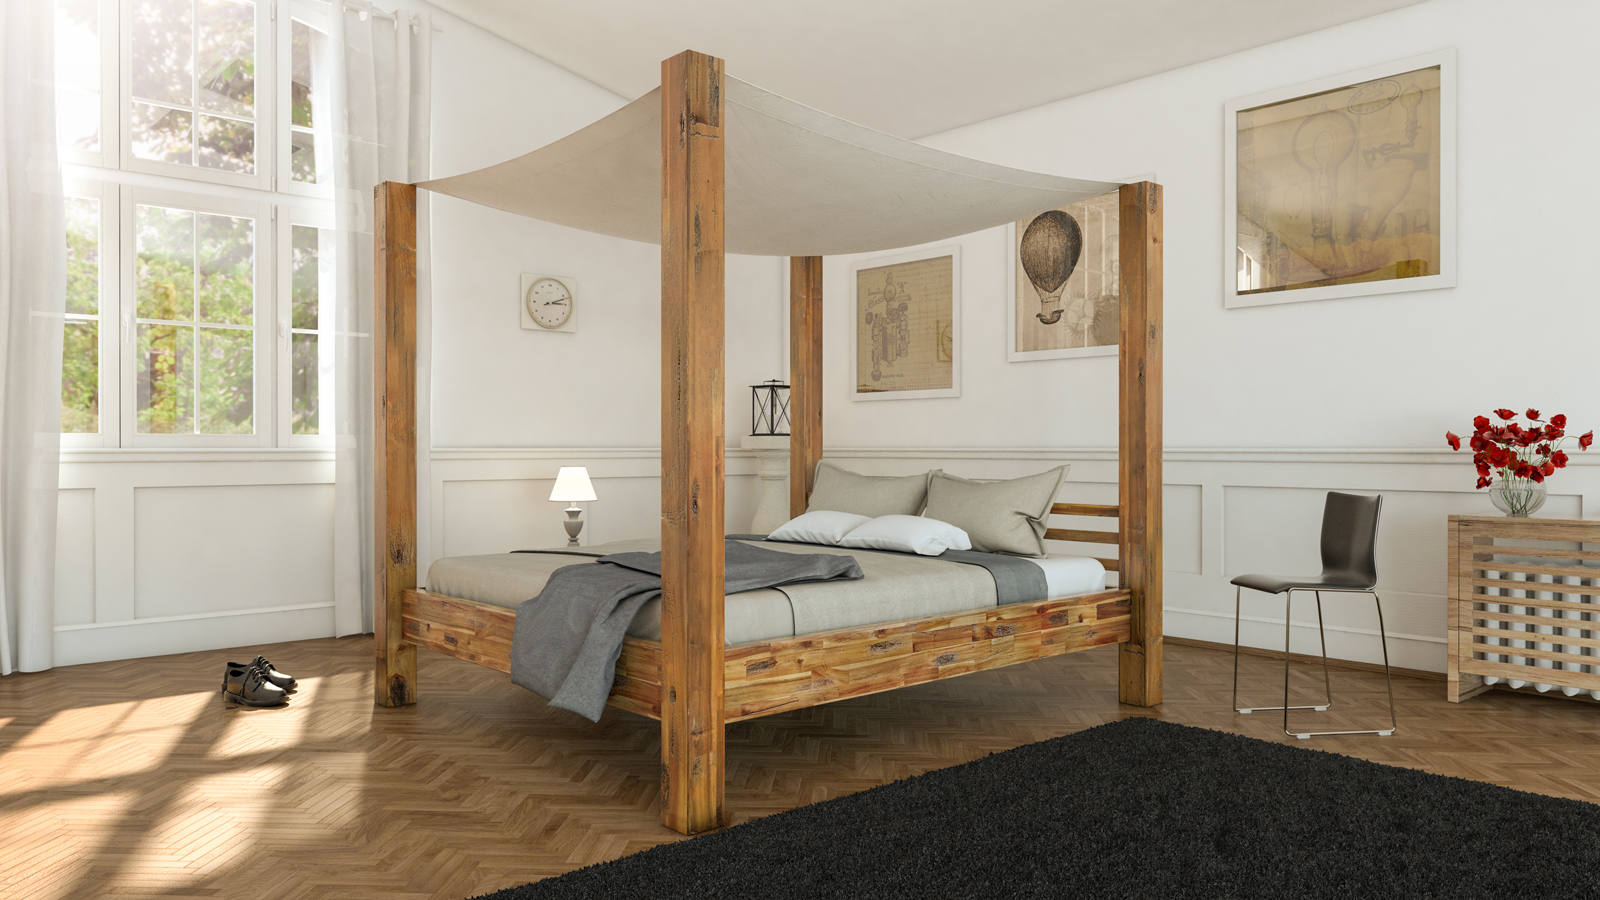 sale himmelbett 180x200 cm massivholzbett inkl himmel akazie bella. Black Bedroom Furniture Sets. Home Design Ideas